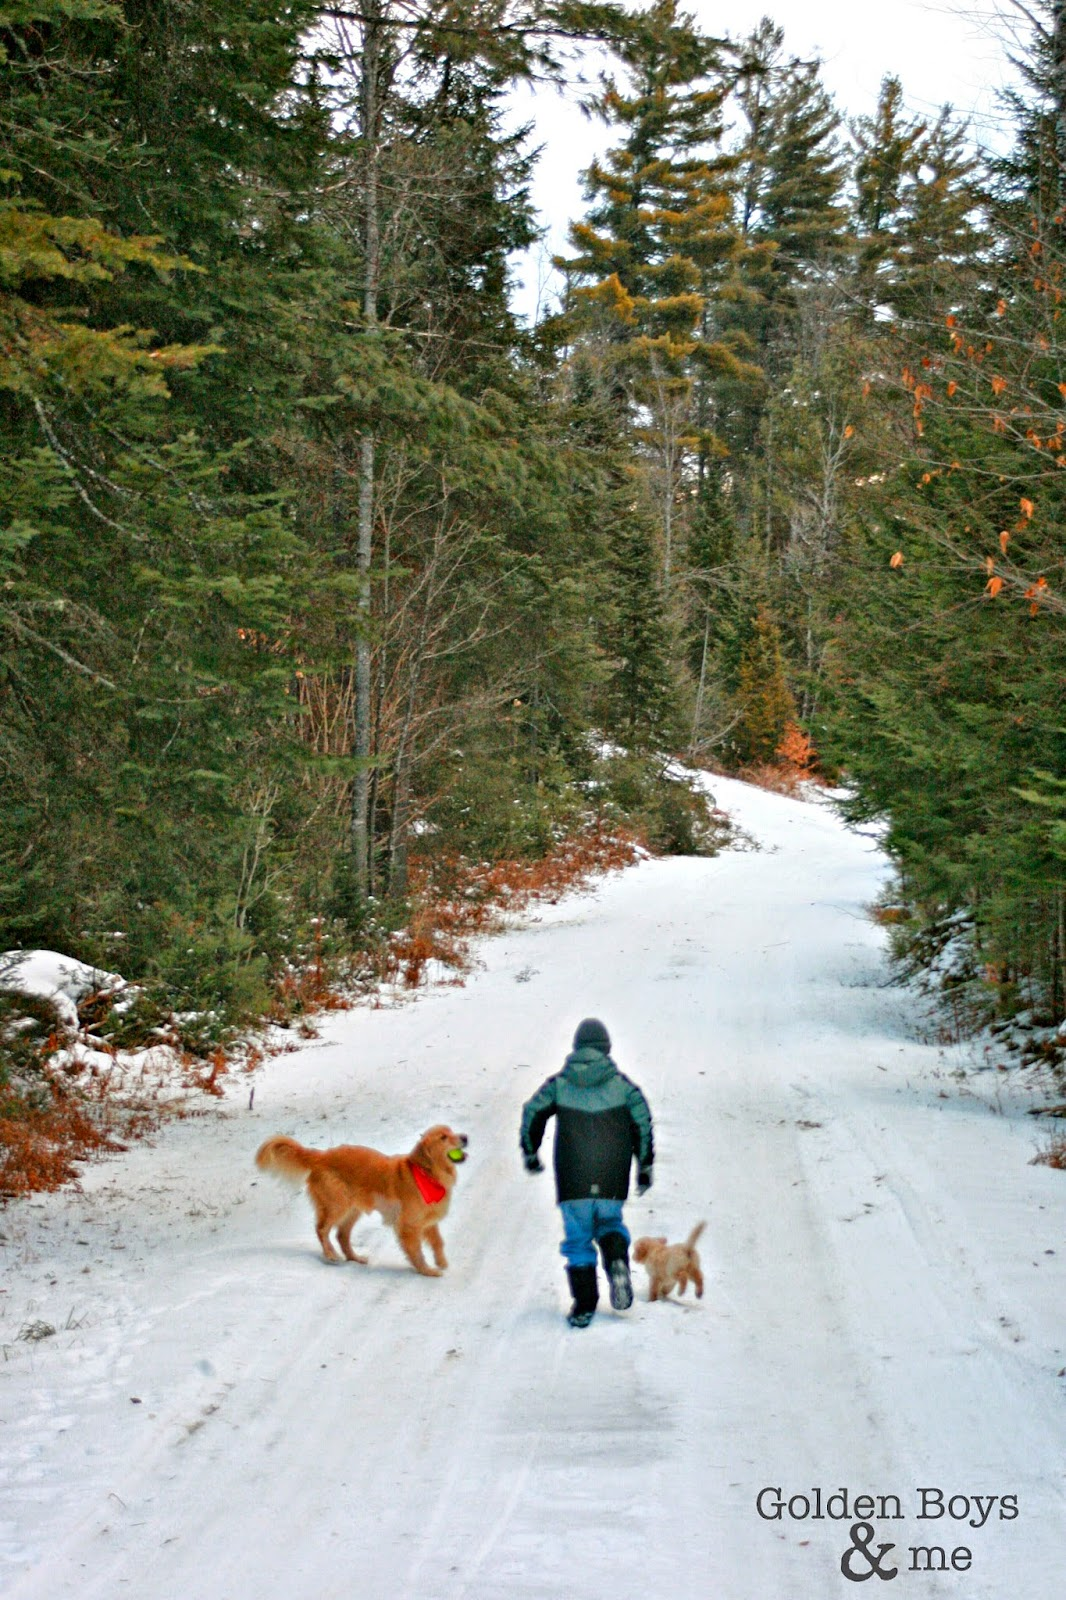 Boy and Golden Retrievers in snowy woods-www.goldenboysandme.com